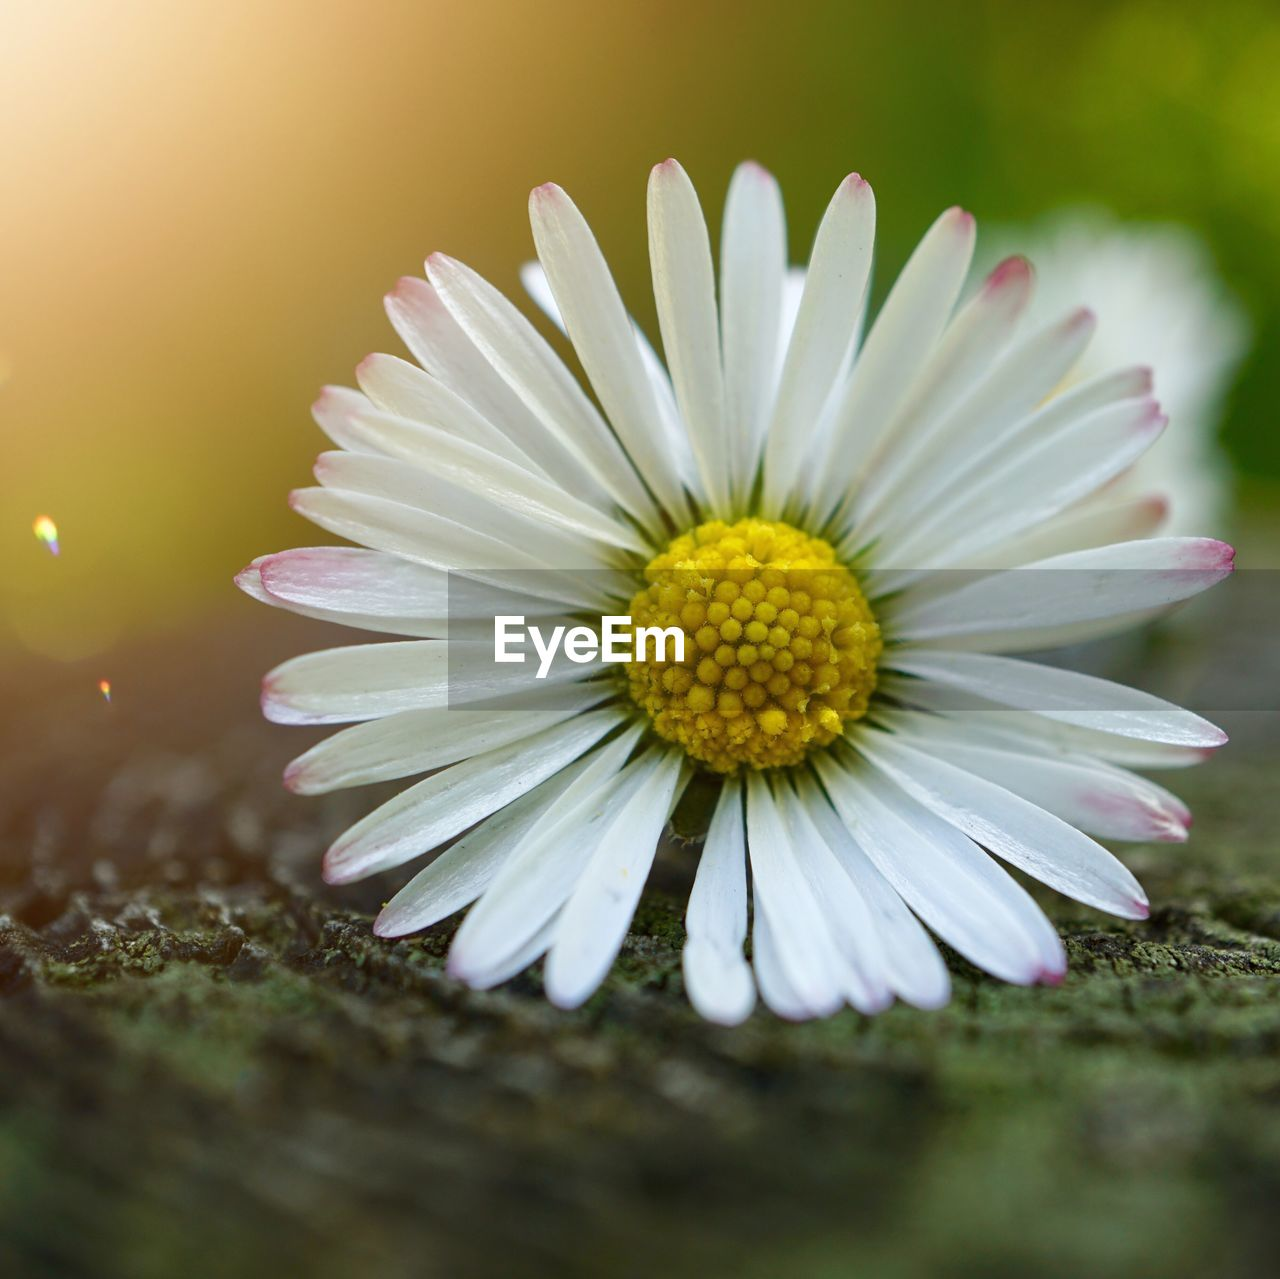 flower, flowering plant, plant, vulnerability, fragility, freshness, petal, close-up, beauty in nature, growth, inflorescence, flower head, selective focus, nature, white color, no people, pollen, daisy, yellow, purple